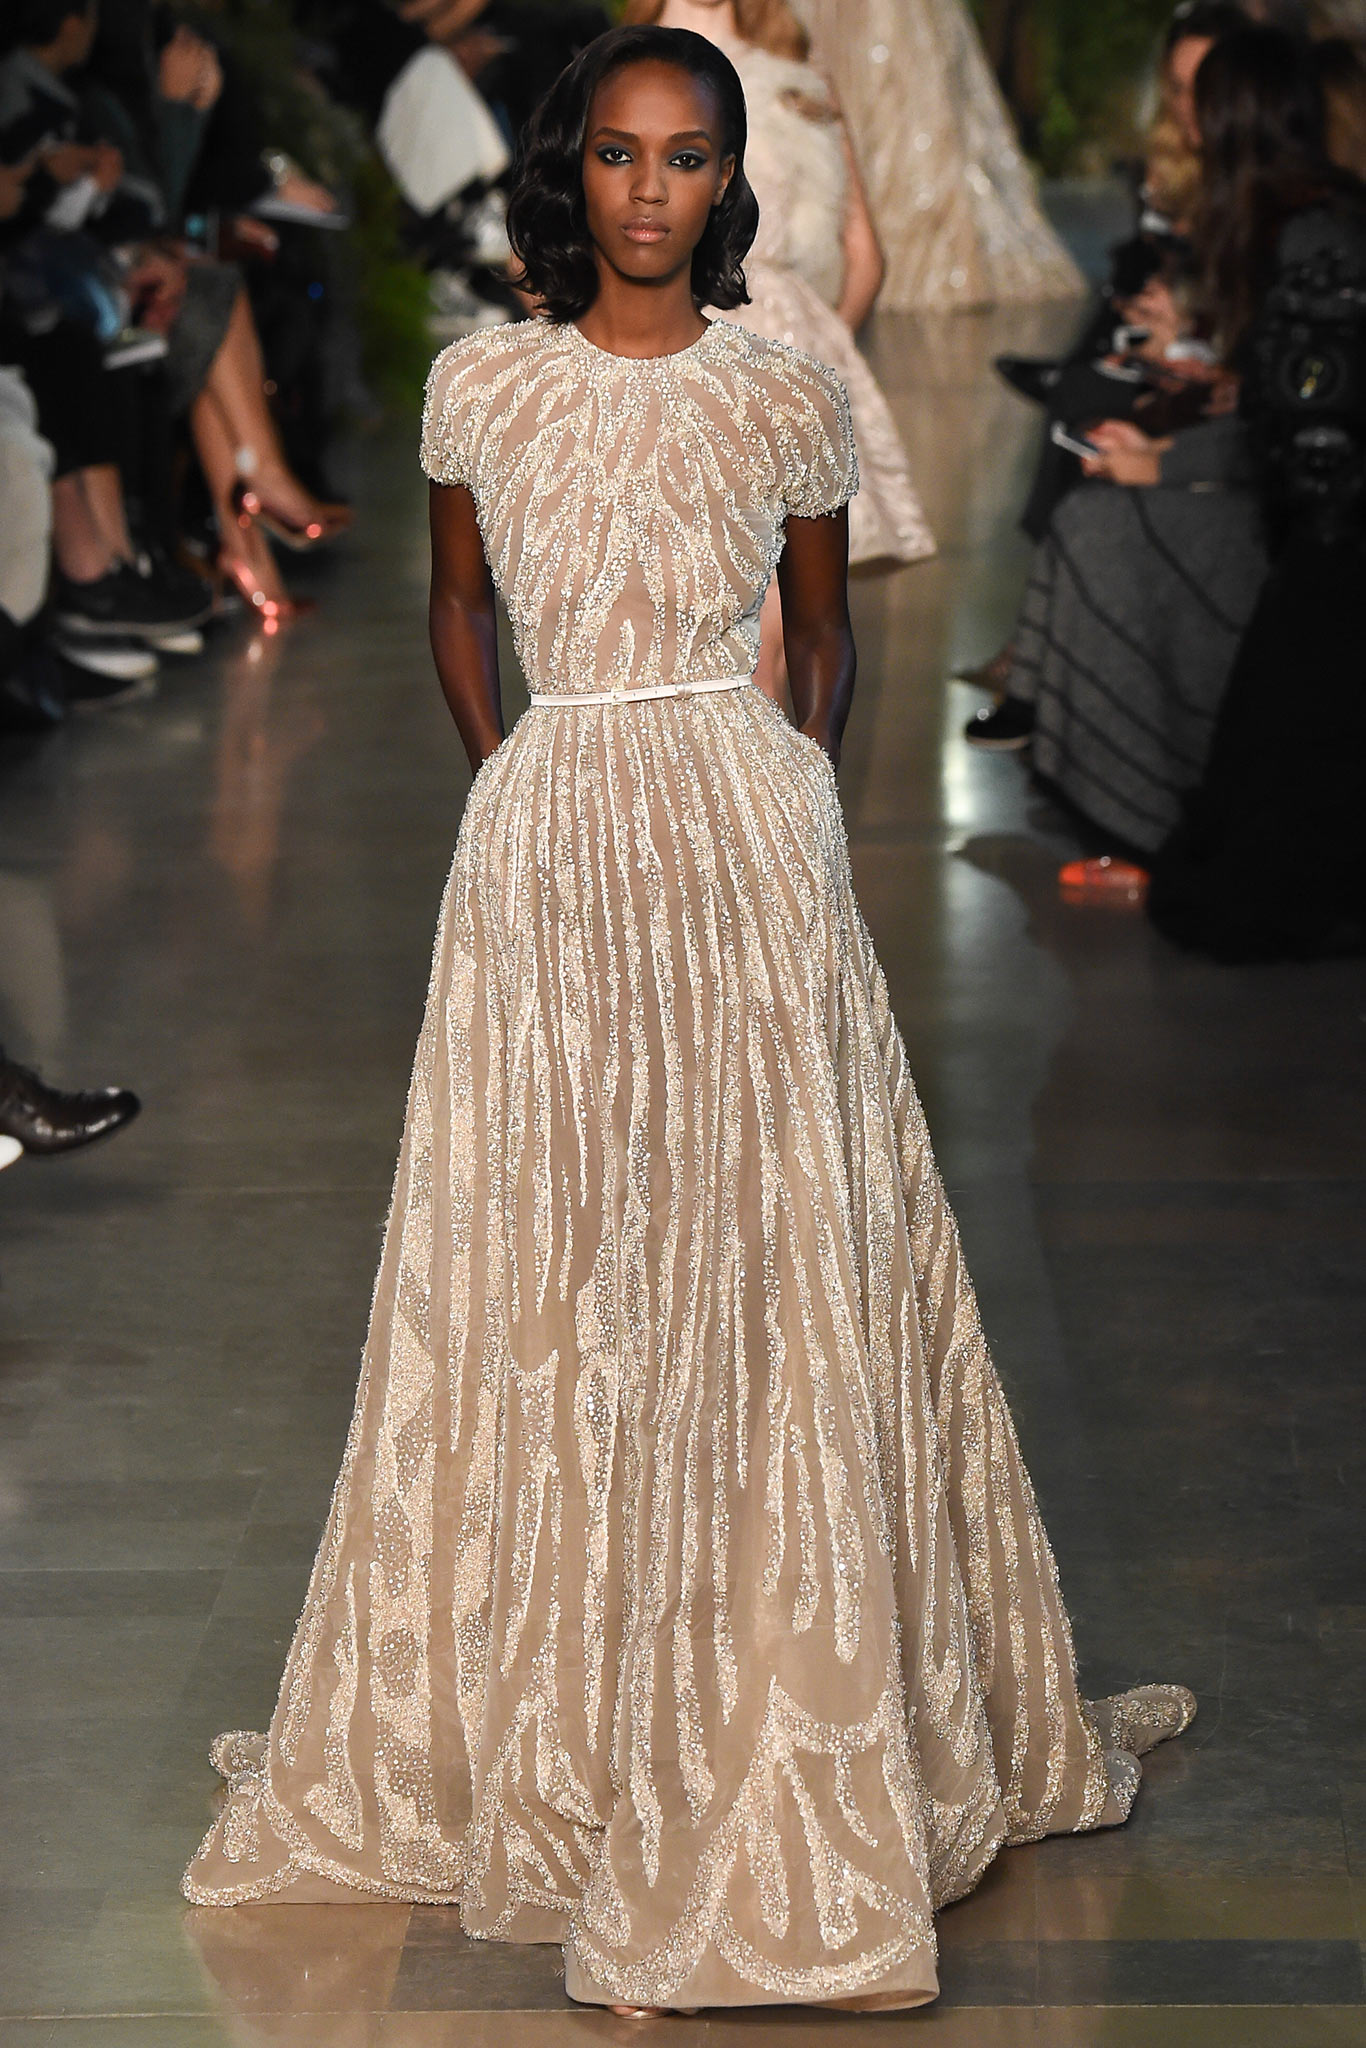 PHOTOS: Elie Saab Spring 2015 Couture Collection